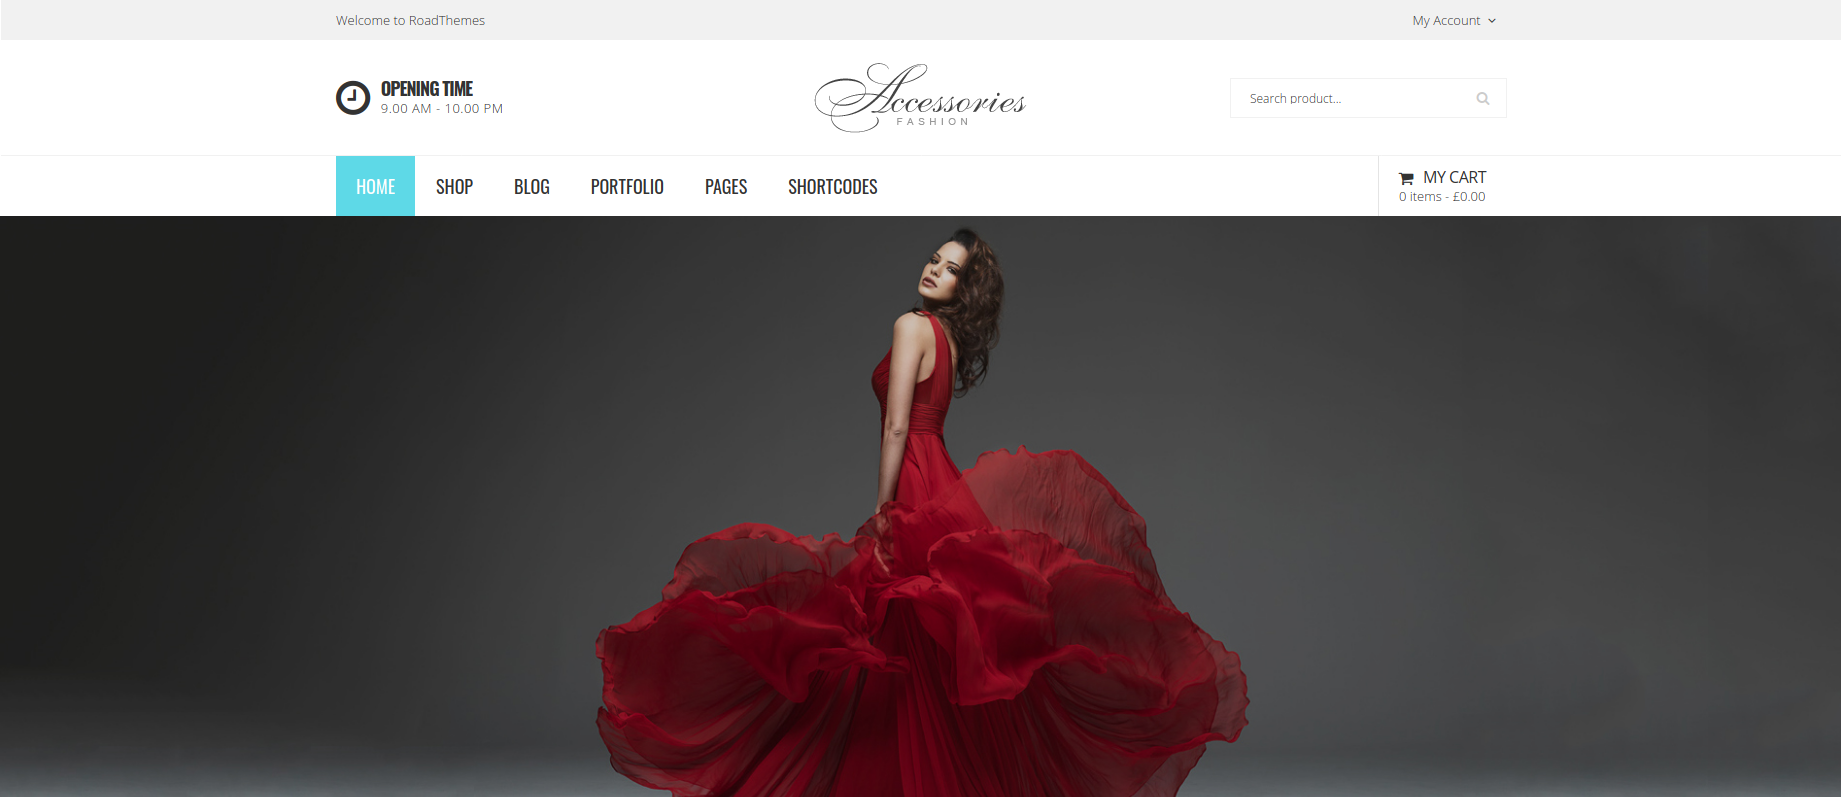 WooAccessories - Accessories WooCommerce Theme